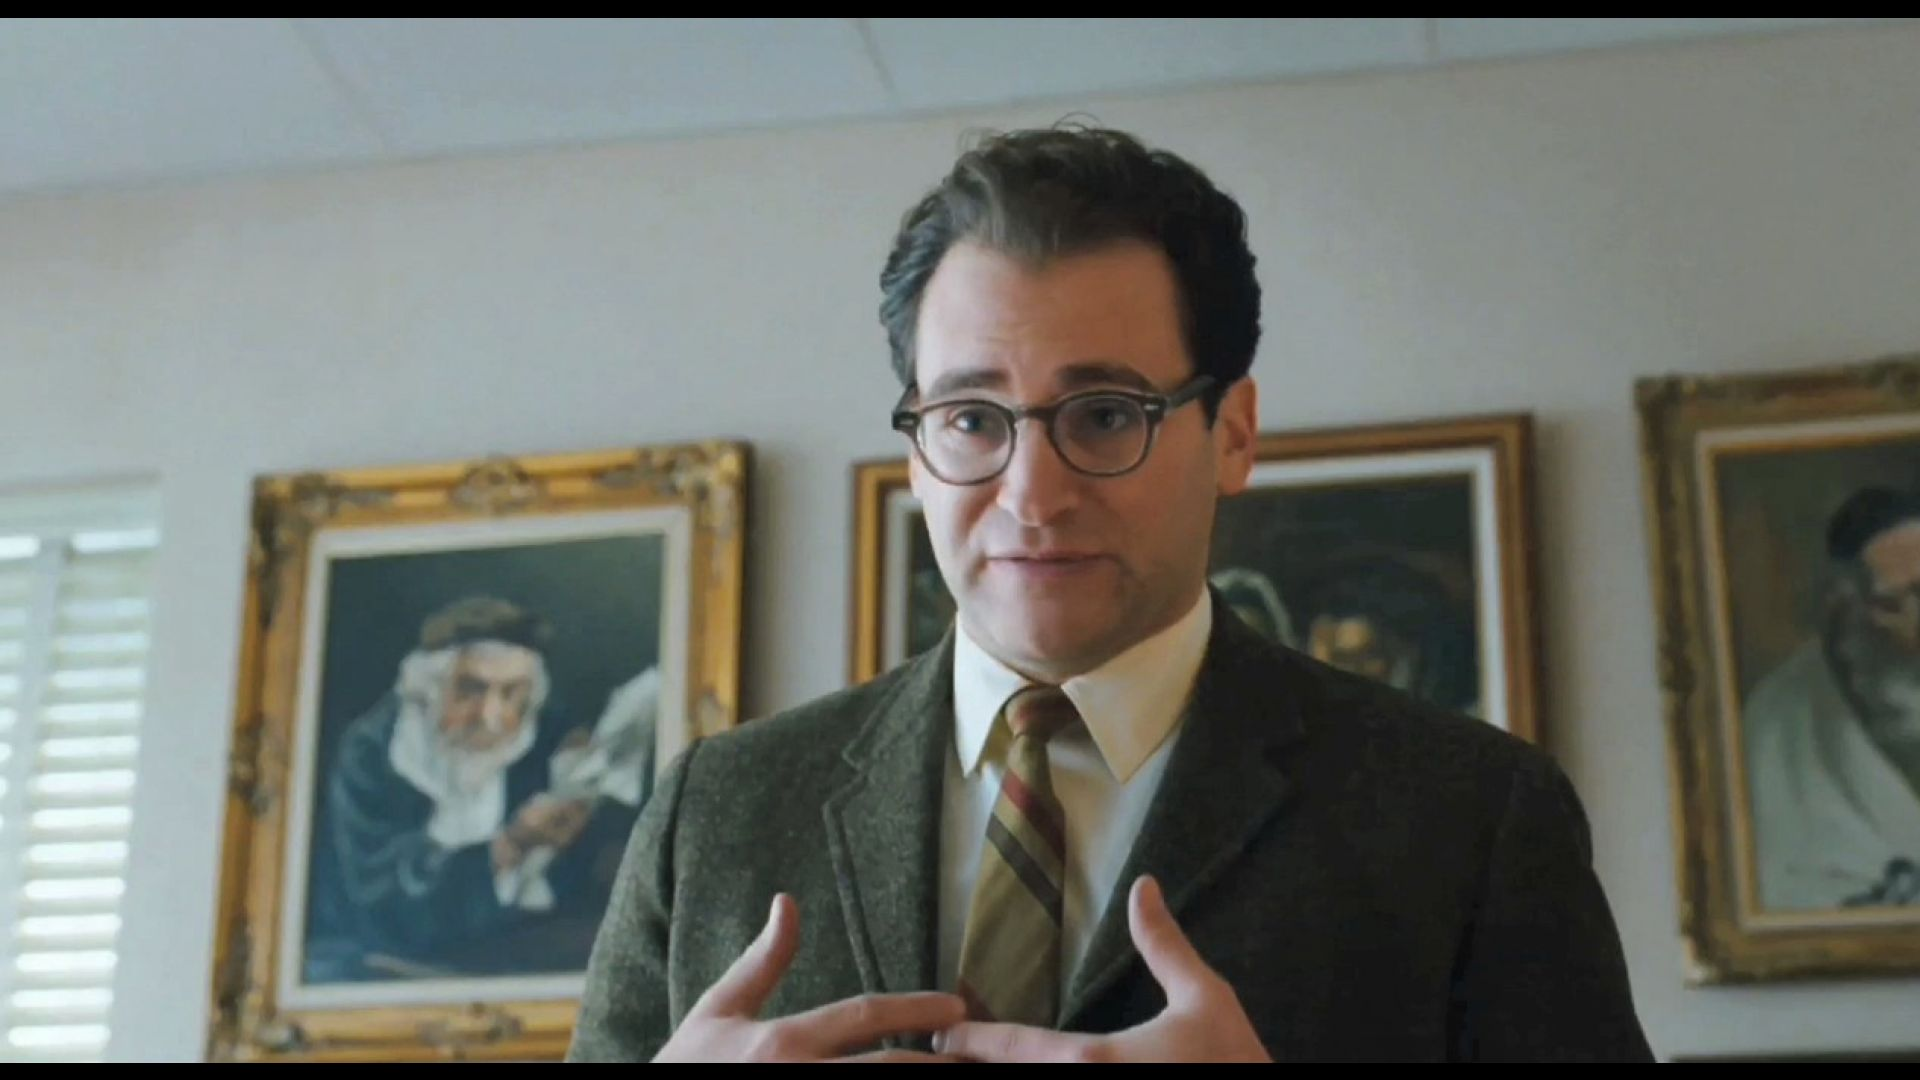 Coen Brothers: A Serious Man